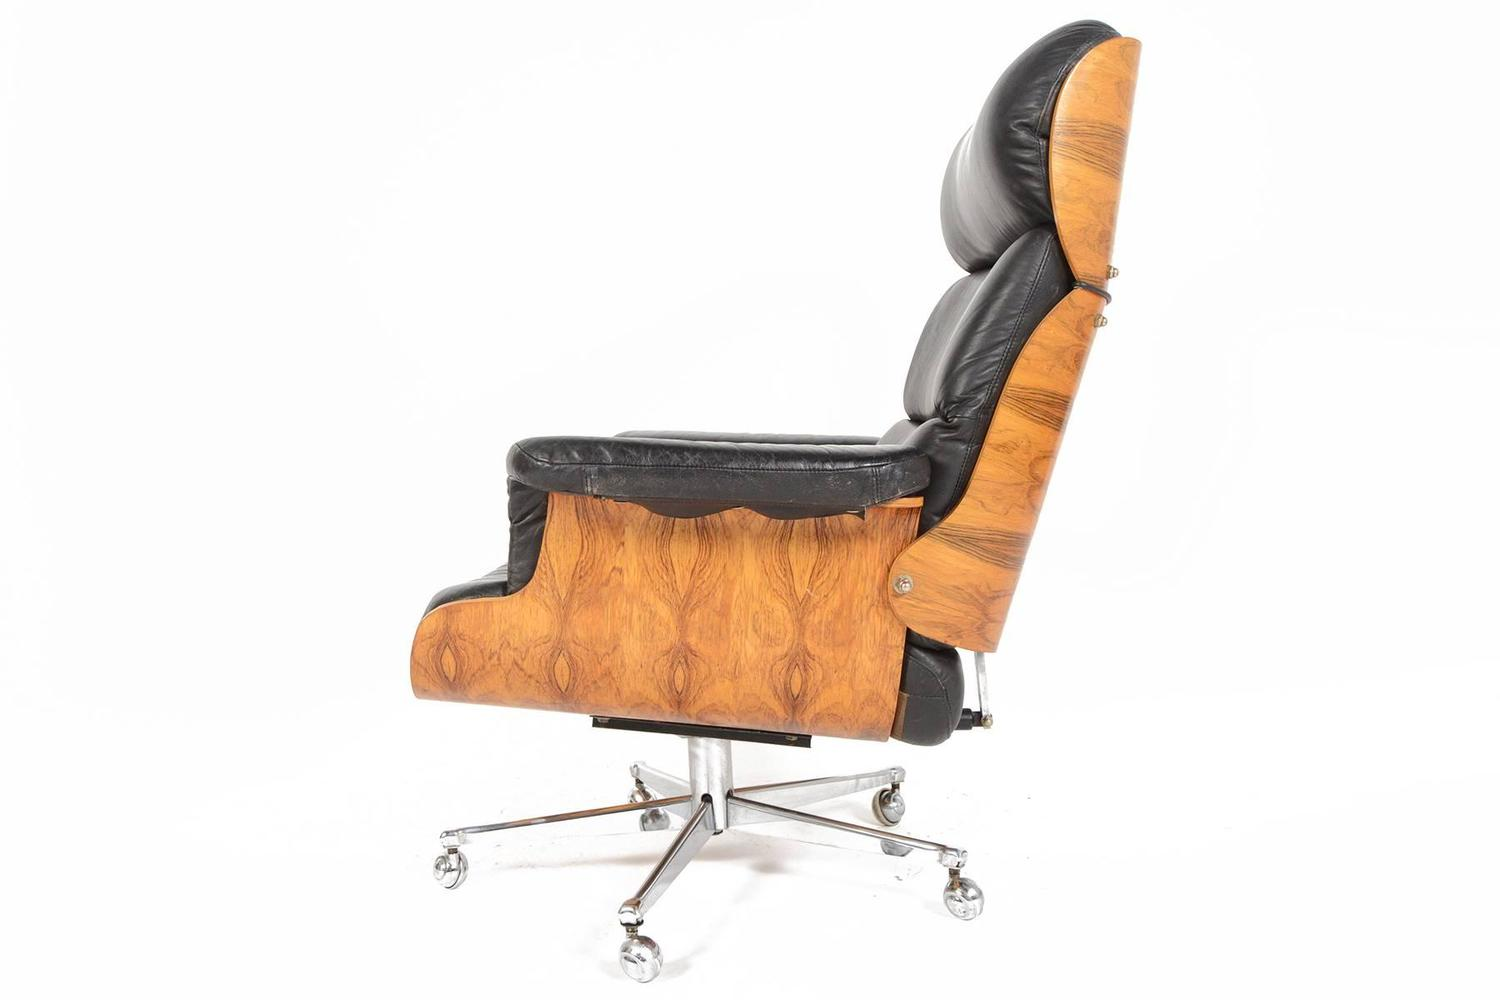 Magnetic Catches For Kitchen Cabinets Leather Swivel Chair And Ottoman Martin Stoll Rosewood